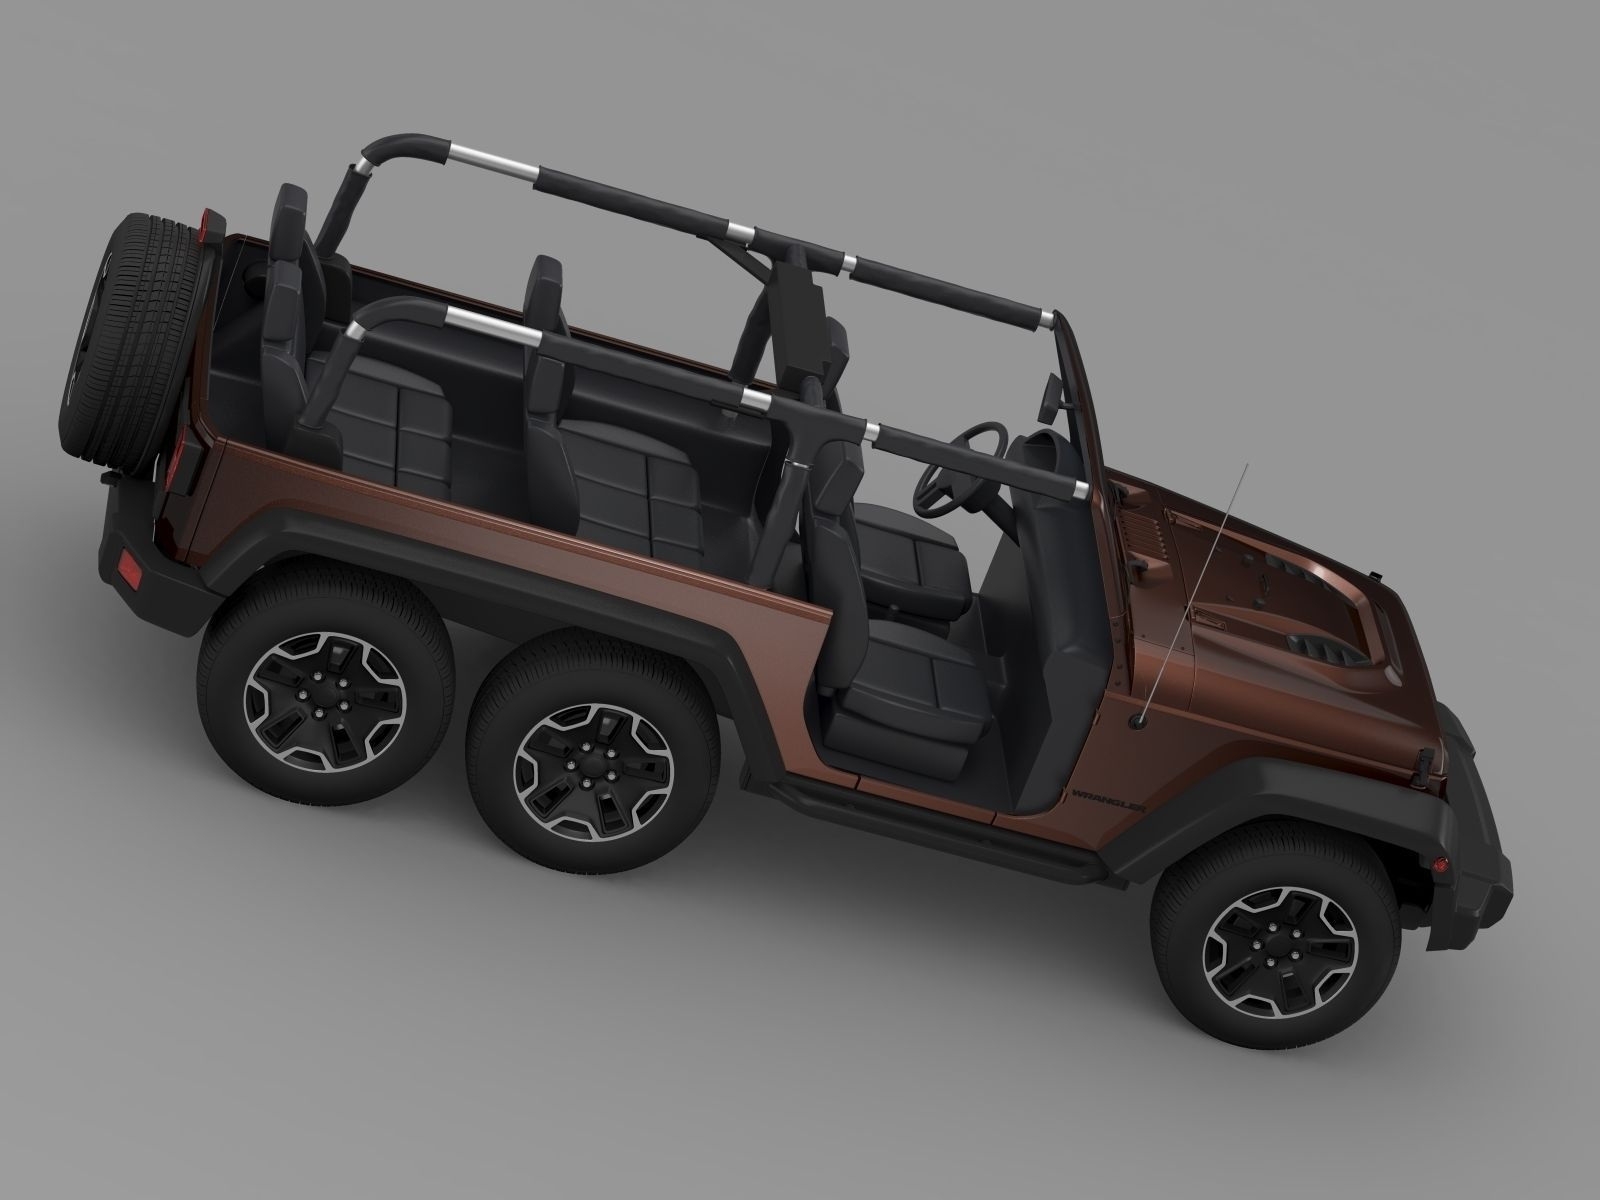 Jeep Wrangler Rubicon 6x6 2016 3d Model Max Obj 3ds Fbx